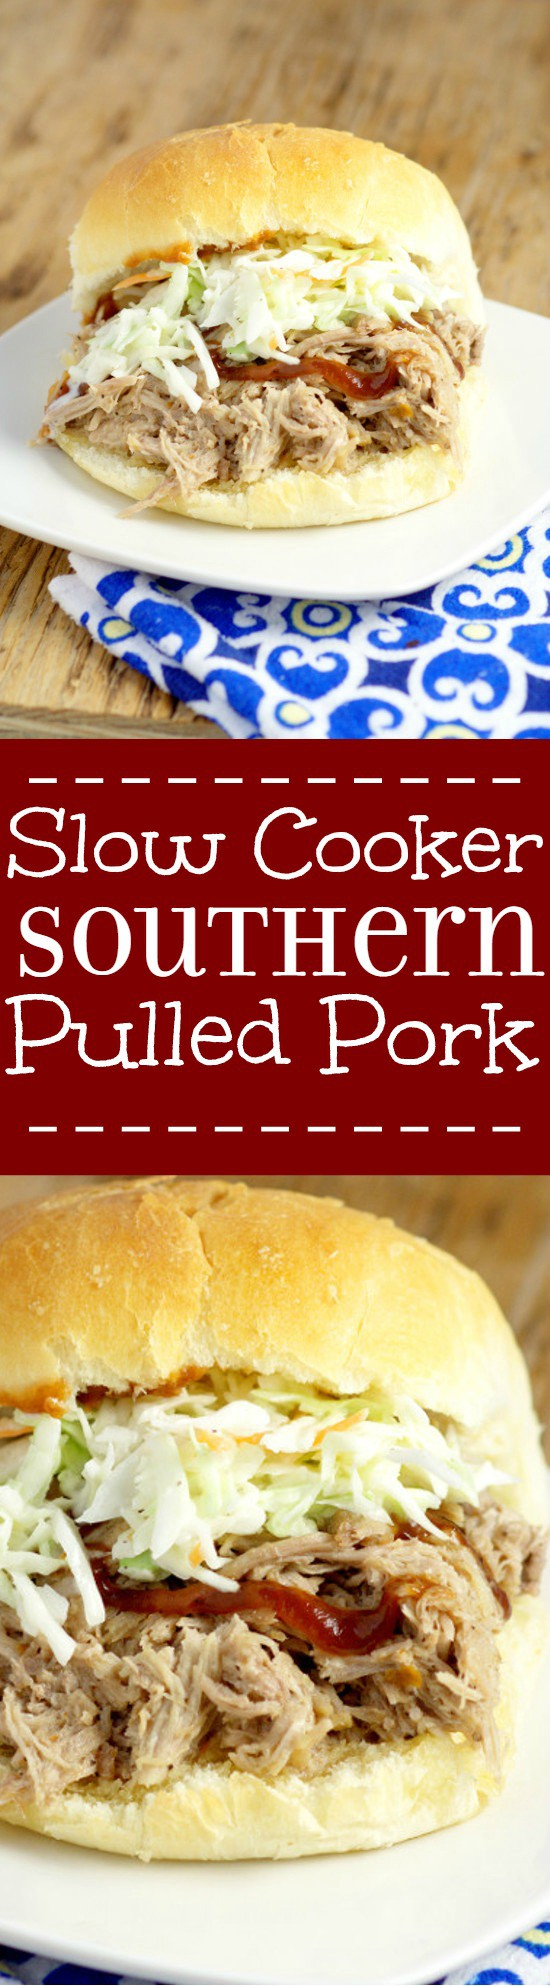 Easy, tangy Slow Cooker Southern Pulled Porkrecipe cooked effortlessly in the Crockpot. Top with creamy coleslaw for a bit of sweet crunch and a true Southern experience! This is seriously one of my favorite recipes of all time!